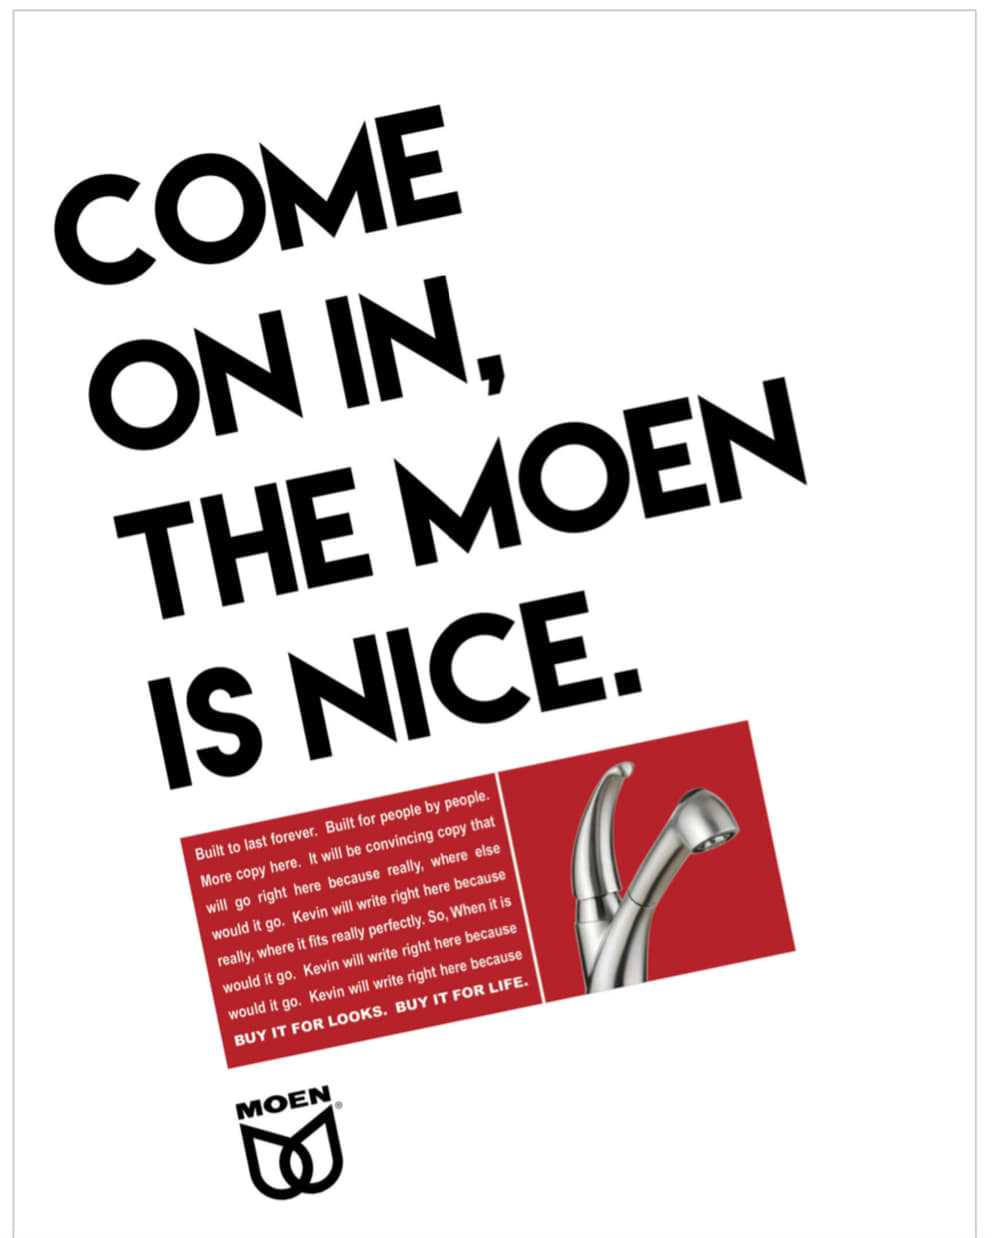 When you think water, you think Moen.